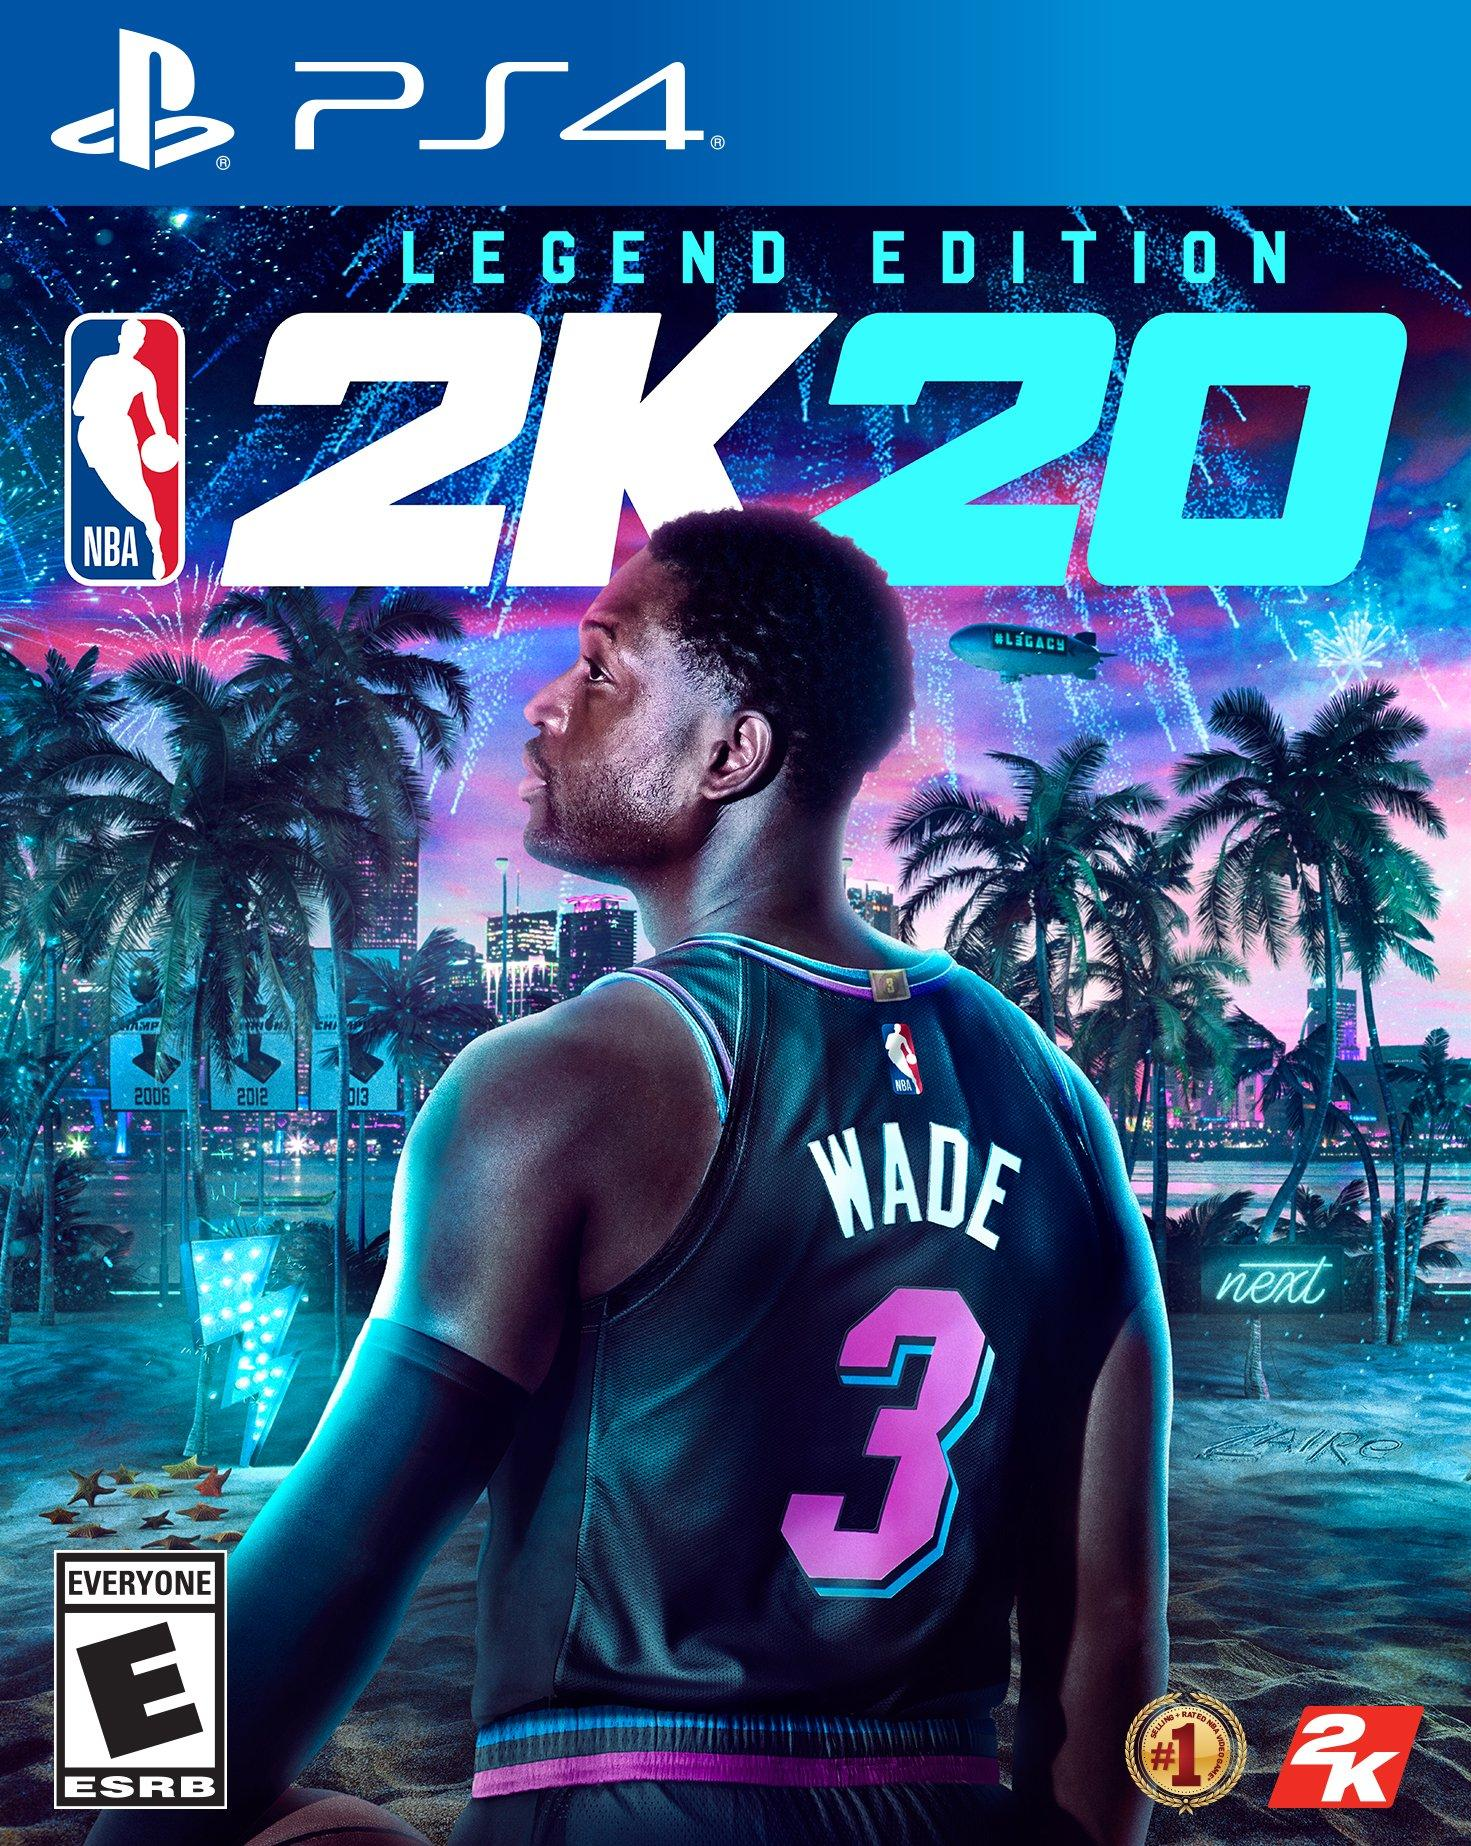 NBA 2K20 Legend Edition | PlayStation 4 | GameStop